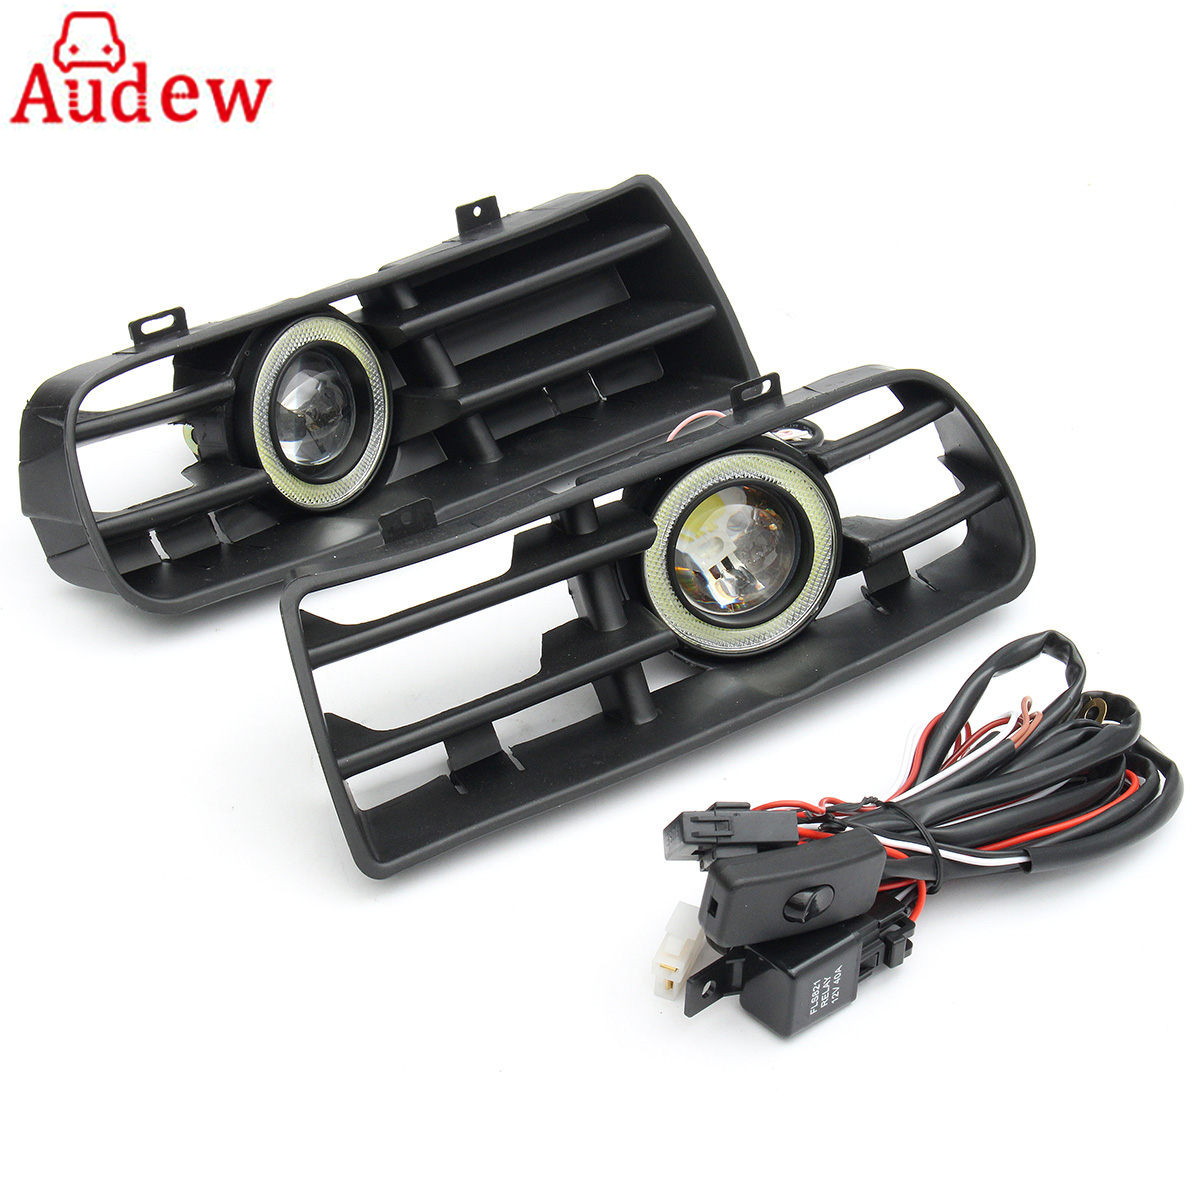 1Pair LED Fog Lights Angel Eyes Lamp Car Front Bumper Grille Grill Cover With Wire Kit For VW Golf MK4 98-04 цена